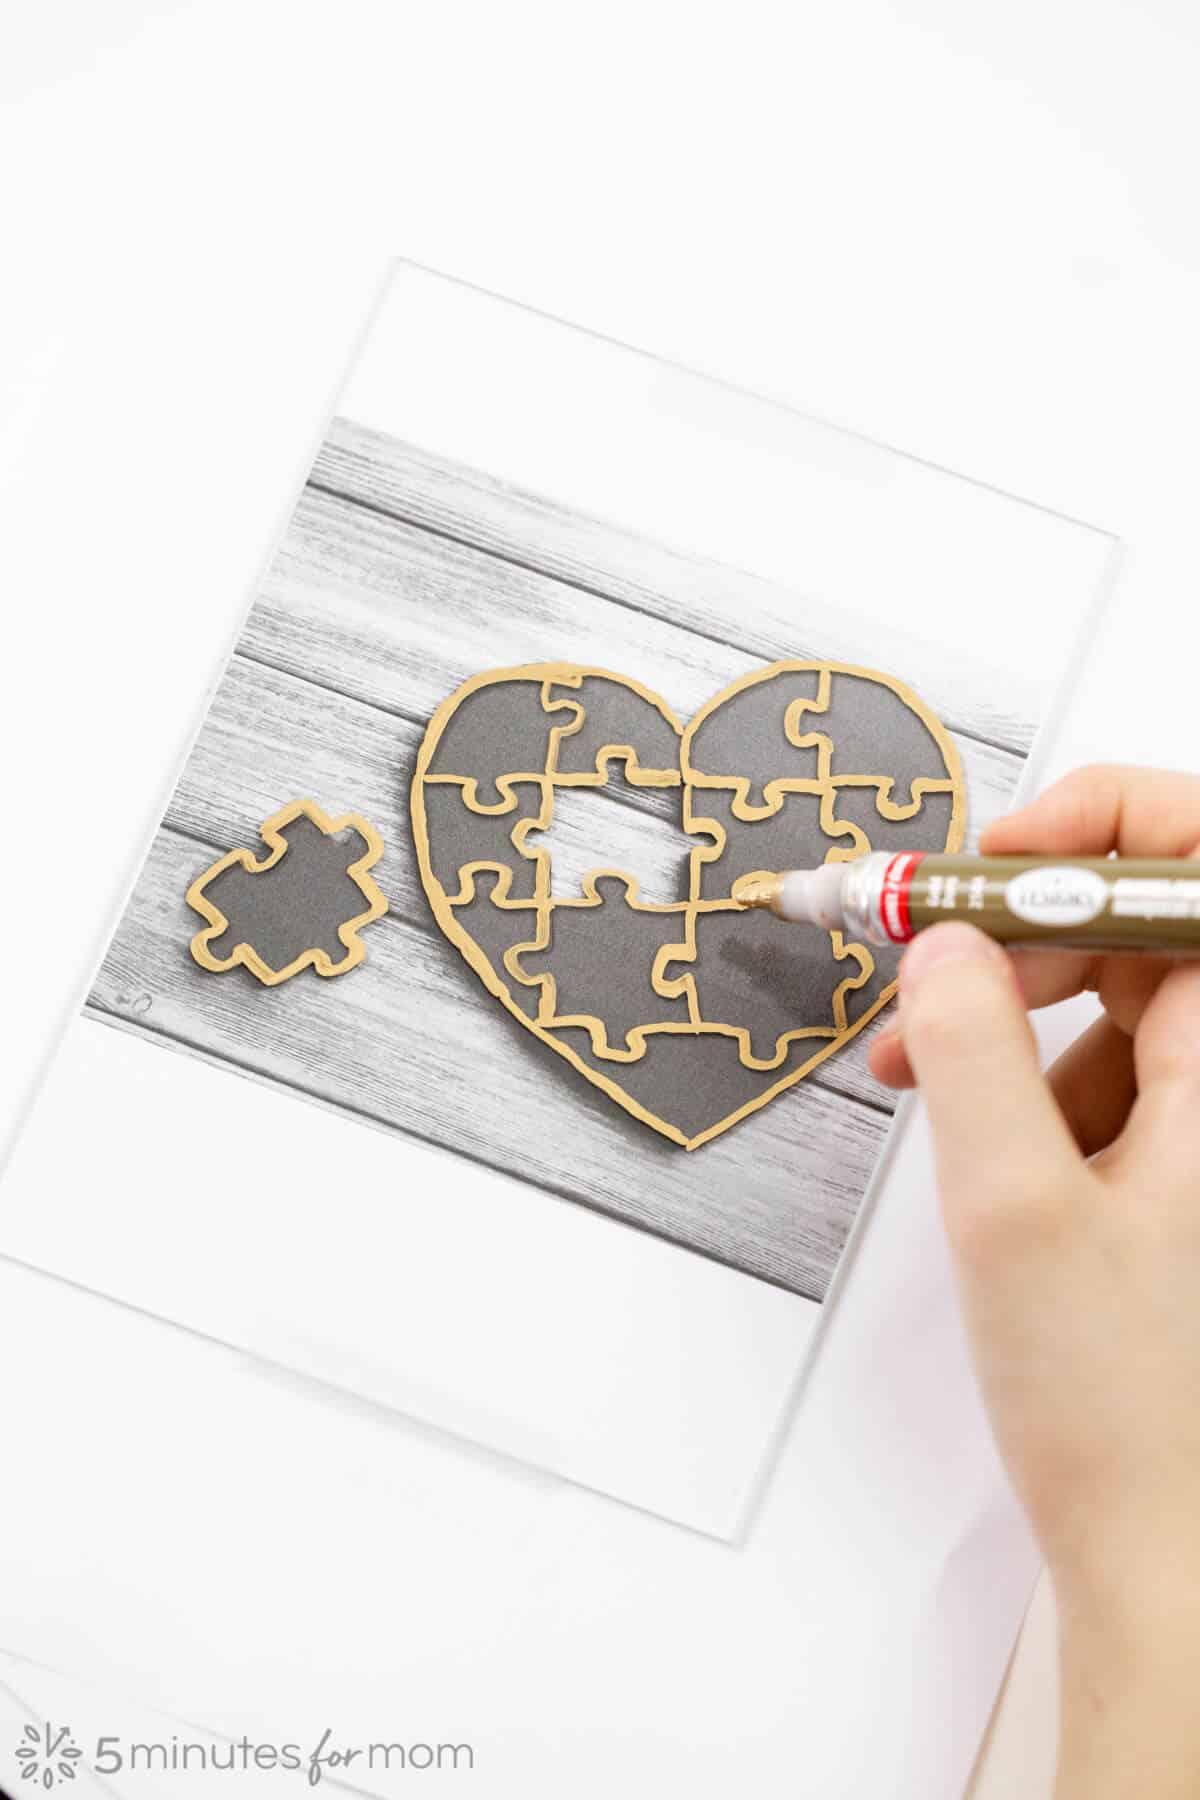 Trace heart shaped puzzle template with enamel paint pen